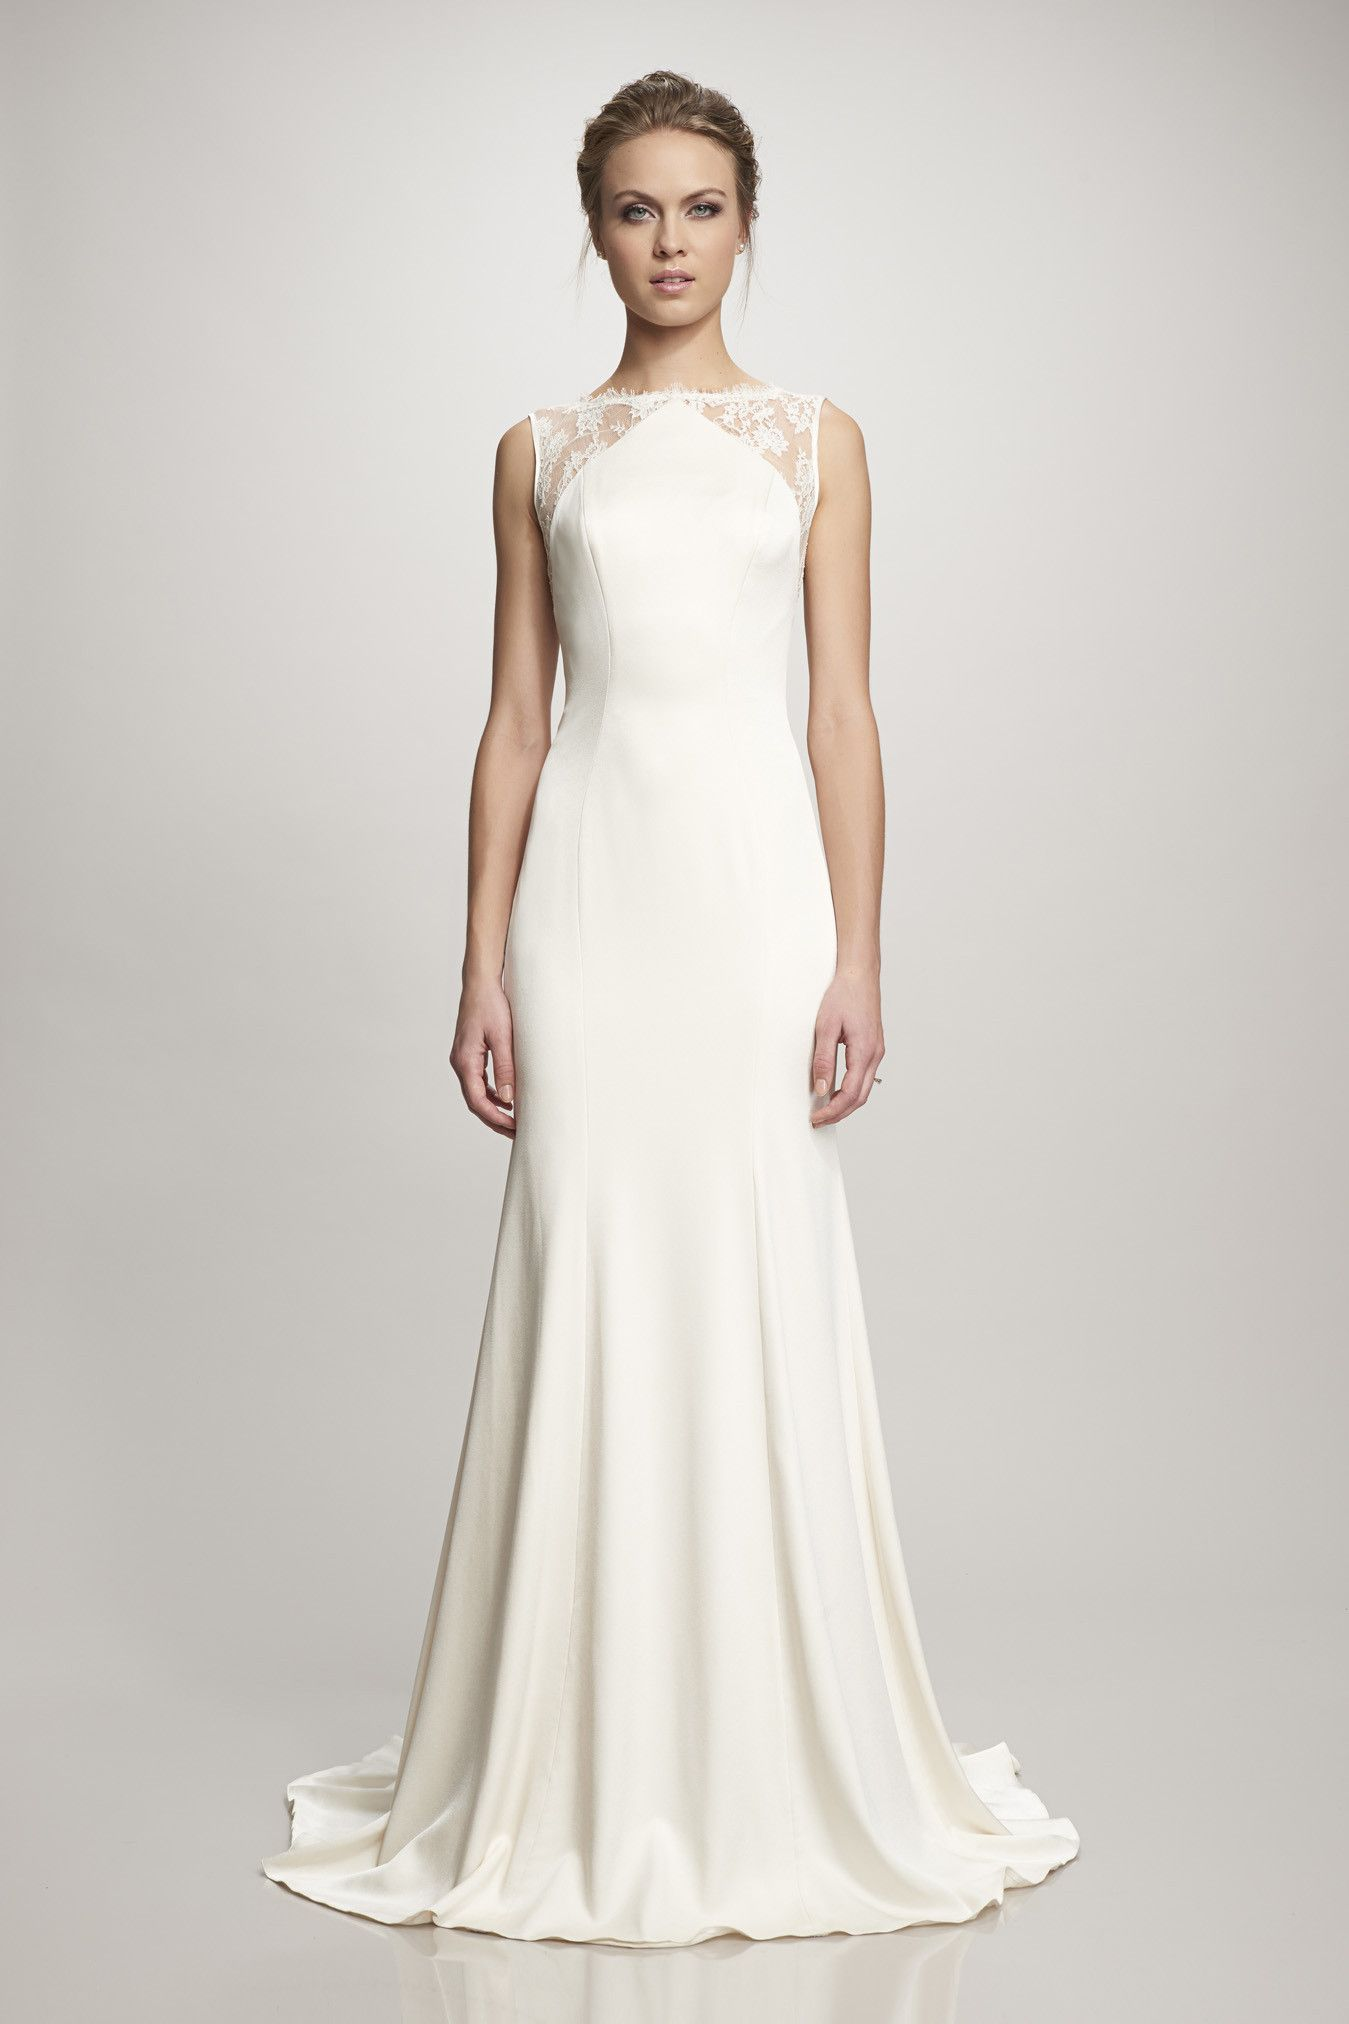 Ivory crepe gown with lace back Used wedding dresses